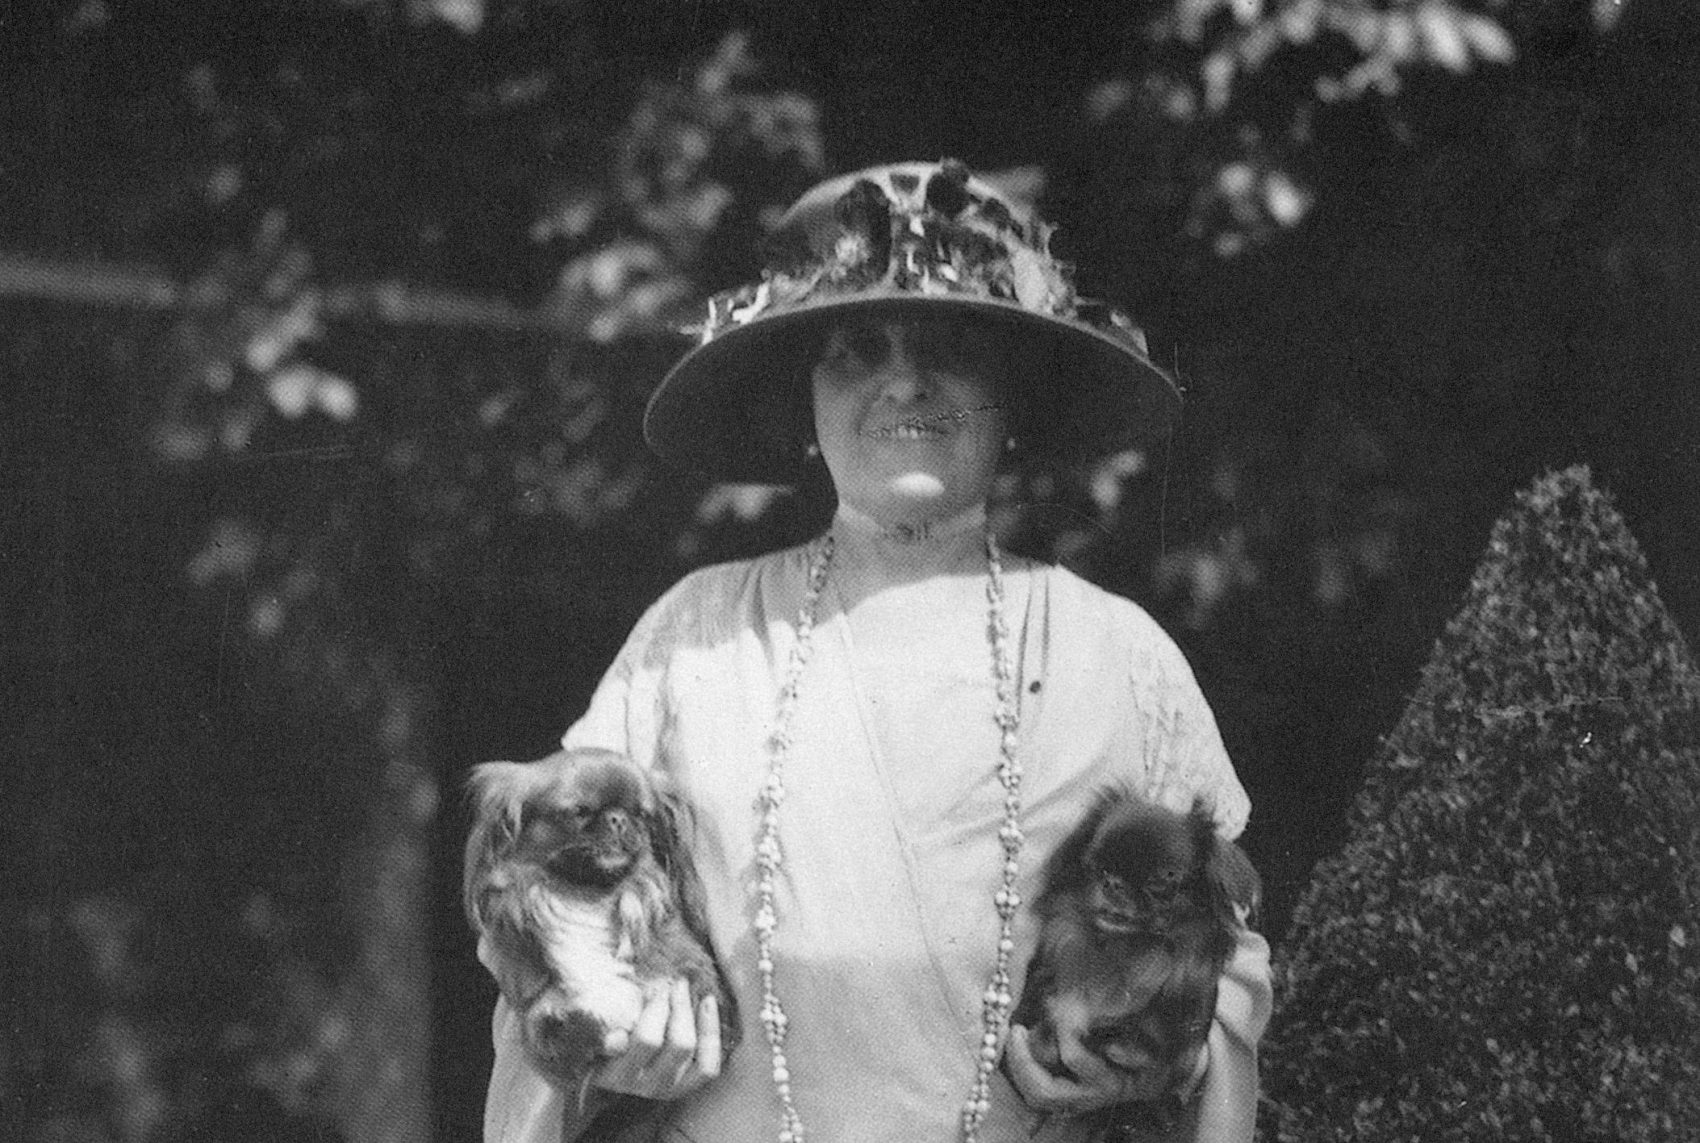 Edith Wharton photographed at her home in France with her two pet Pekingese dogs in the 1920s. (Courtesy Granger Historical Picture Archive/Alamy)